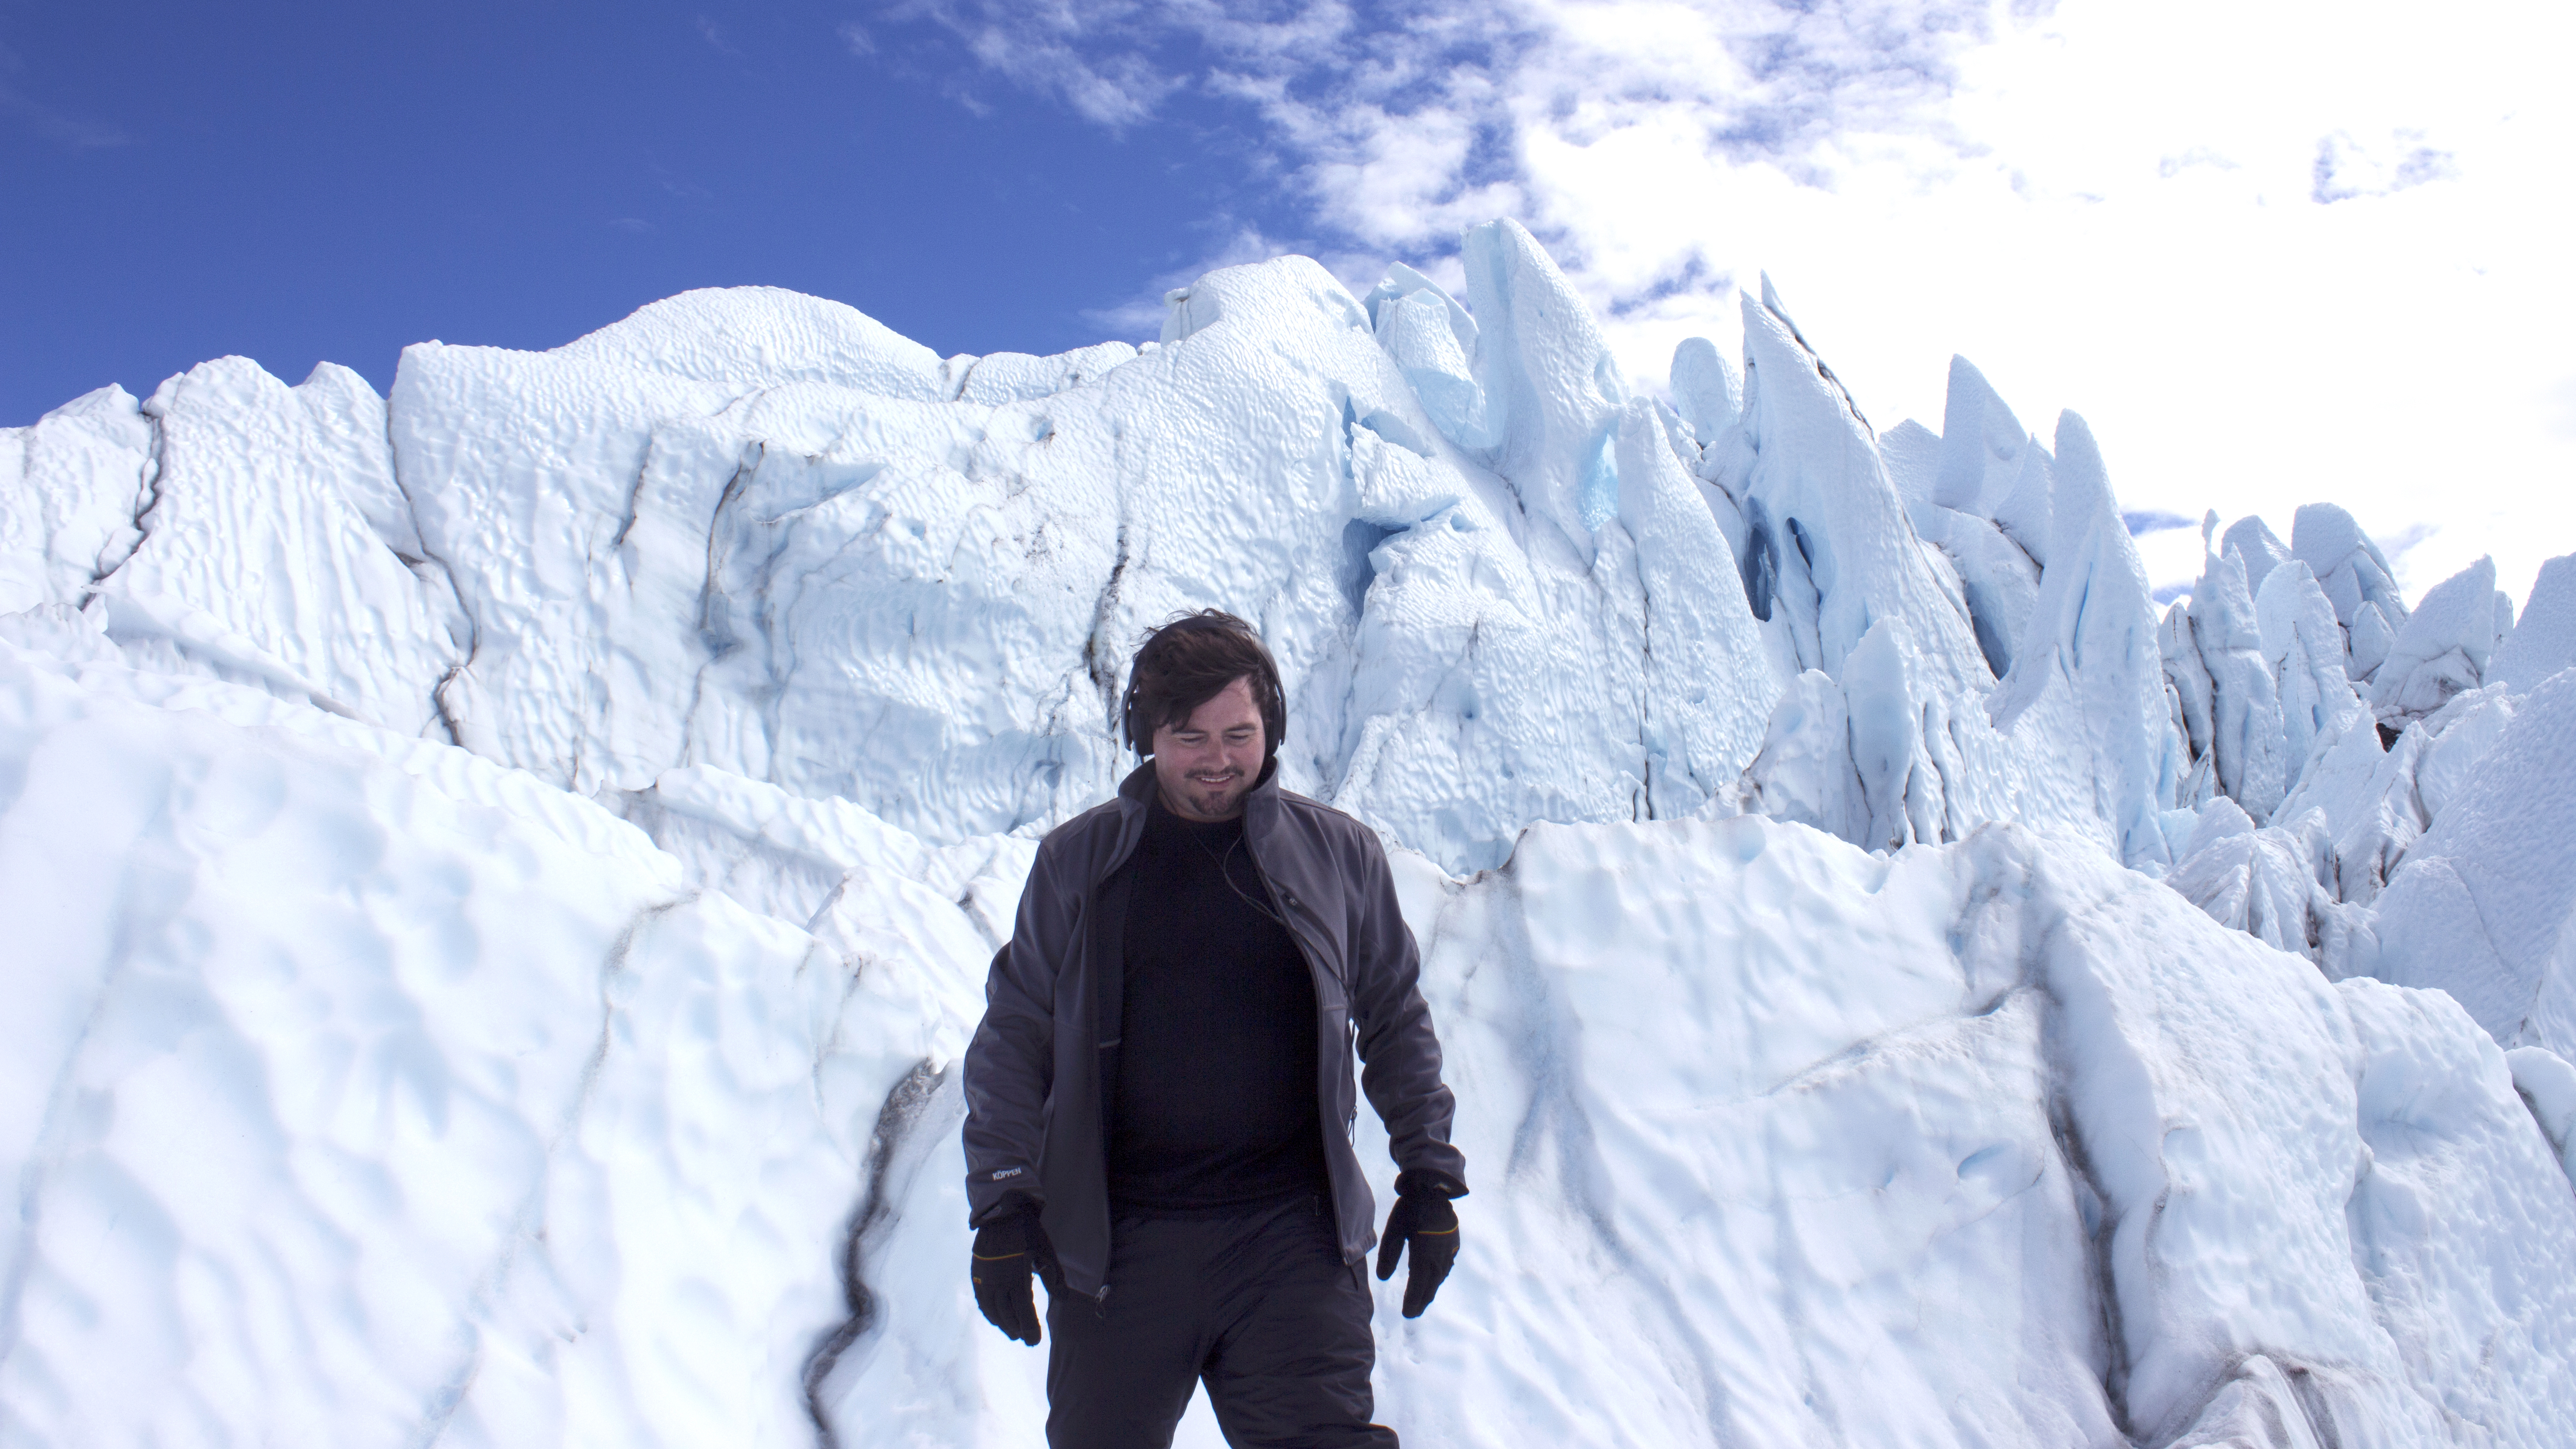 Matthew Burtner, incoming chair of U.Va.'s music department, records sounds on glaciers in his native Alaska and edits them to create original compositions. (Photo provided by Matthew Burtner.)